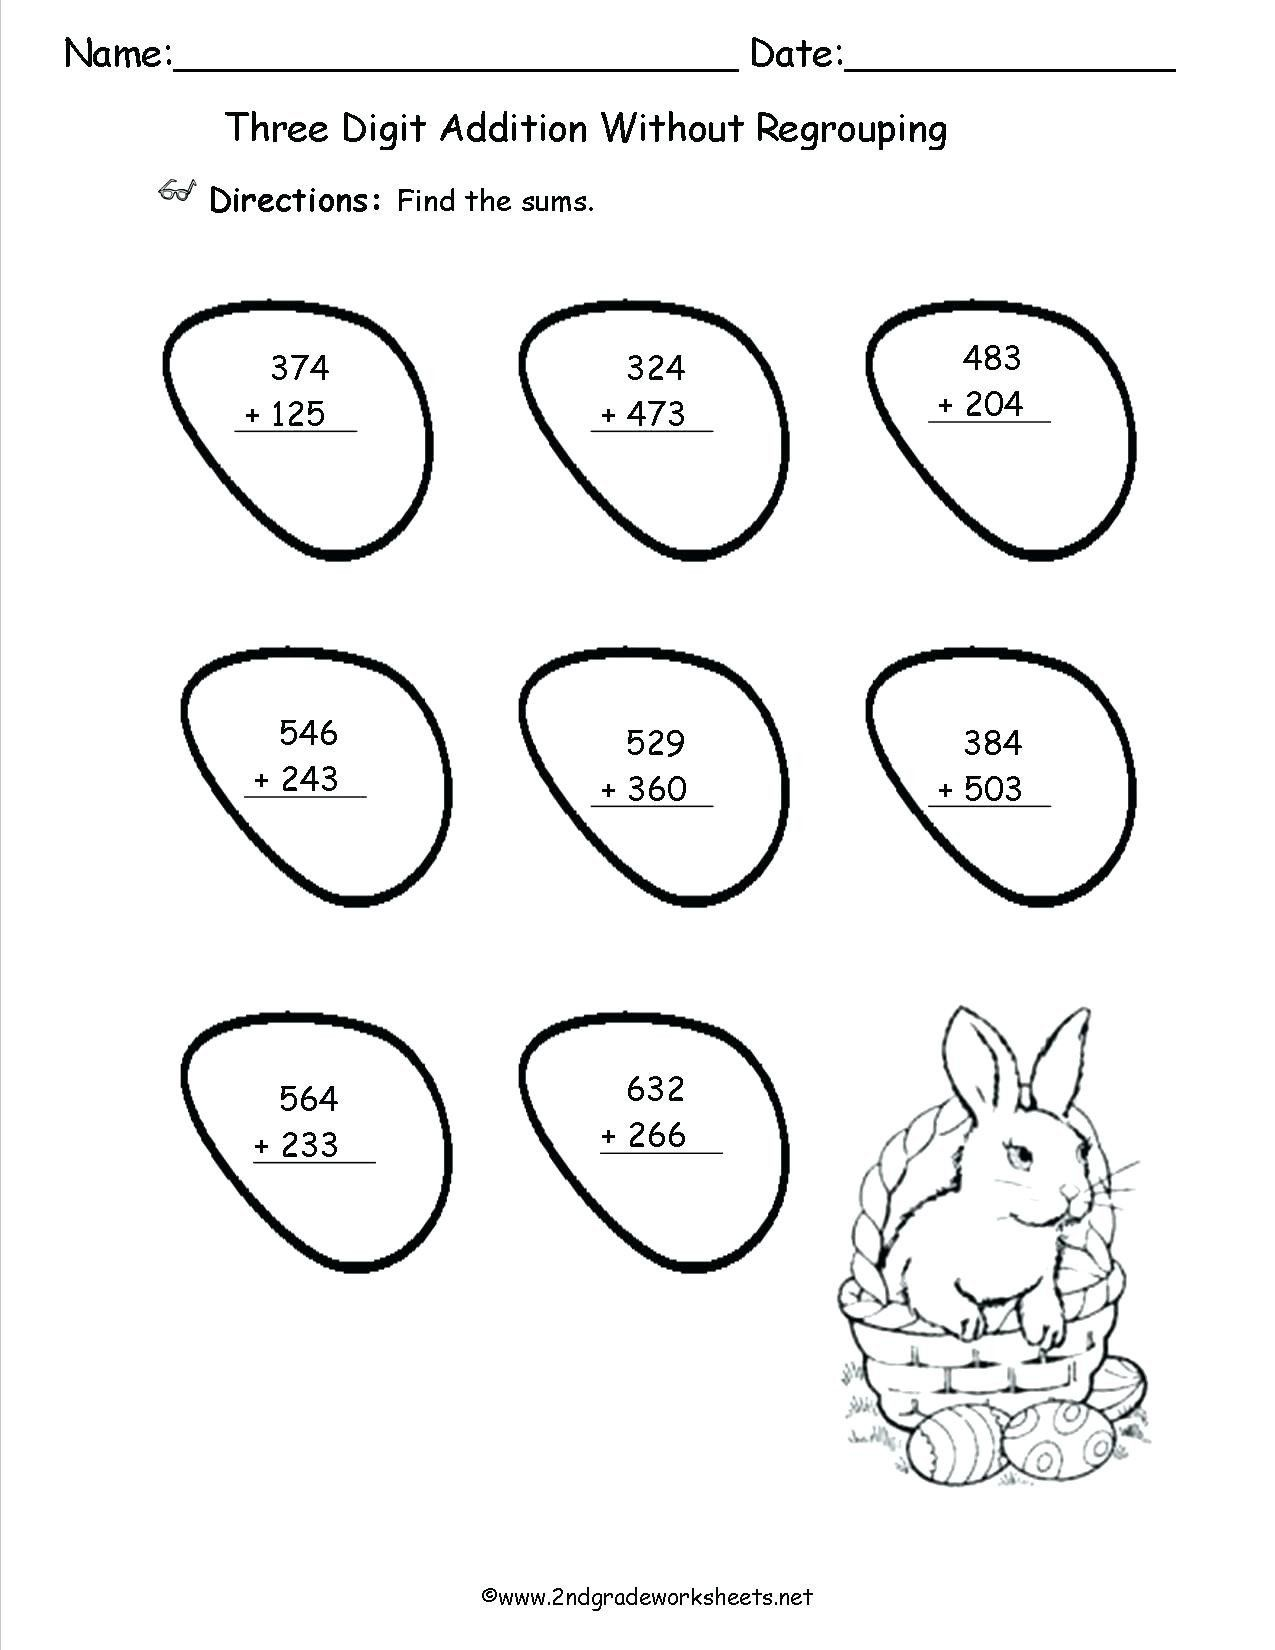 Fraction Problems 3rd Grade Worksheet Ideas Coloring Tremendous Third Summer Themed Math In 2020 Fun Math Worksheets Easter Math Worksheets Math Coloring Worksheets